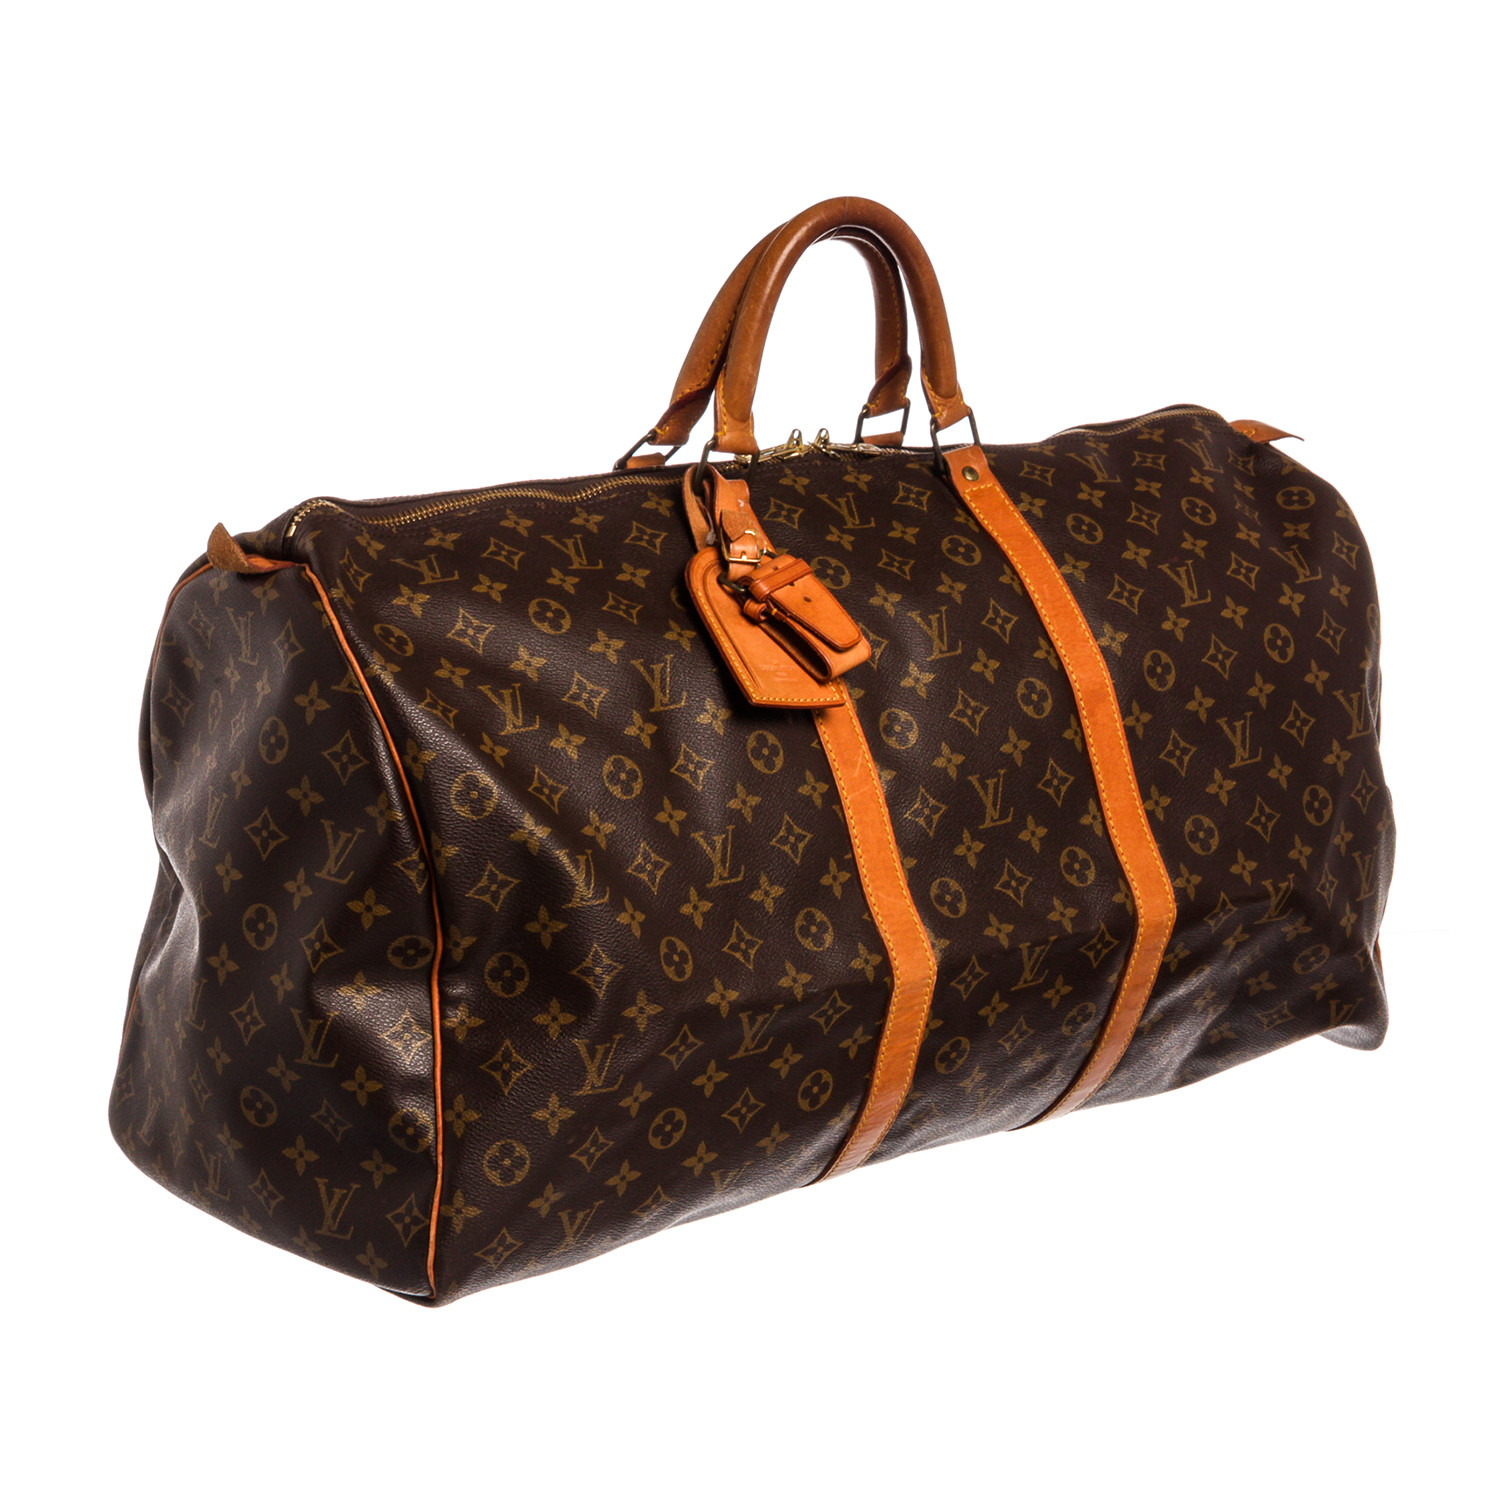 082d4813e076 Monogram Canvas Leather Keepall 60 cm Duffle Bag Luggage    Pre-Owned